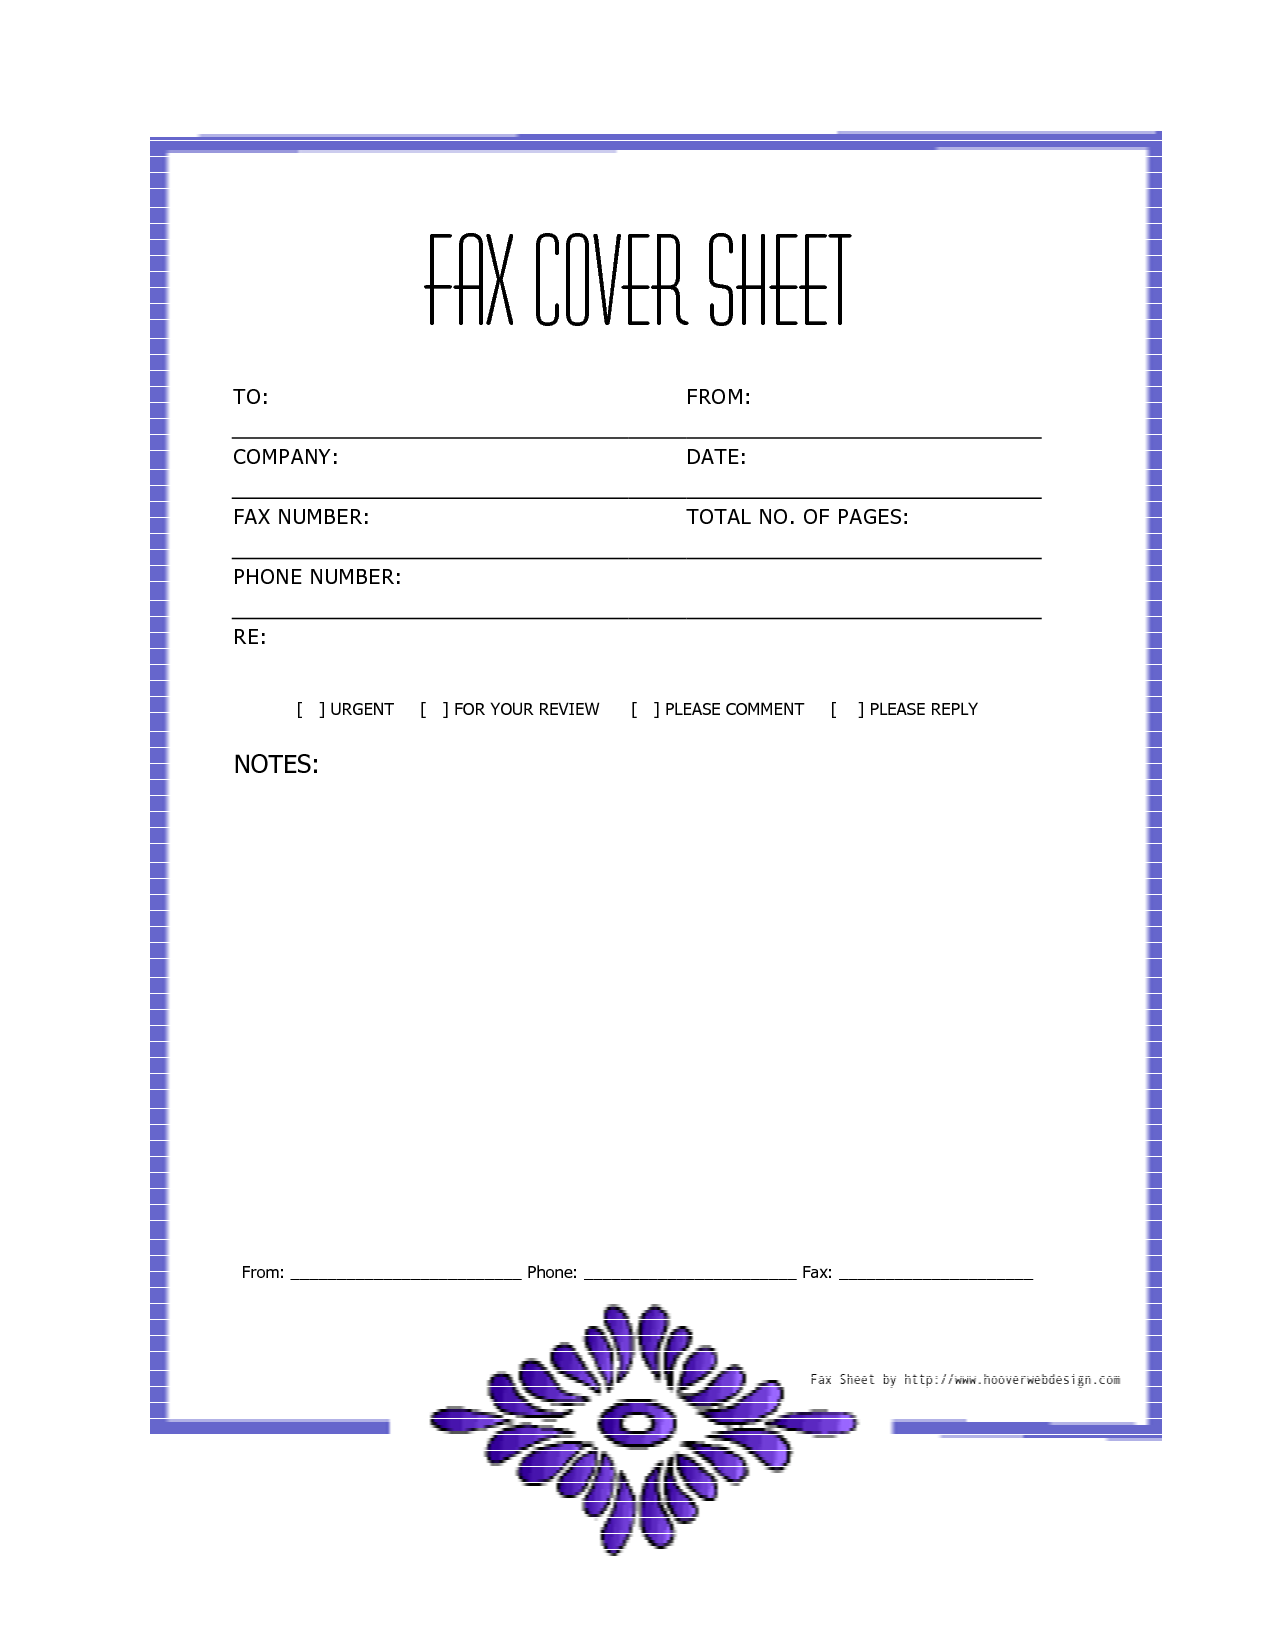 Free Downloads Fax Covers Sheets | Free Printable Fax Cover Sheet Template  Elegant   Download As  Fax Cover Template Word